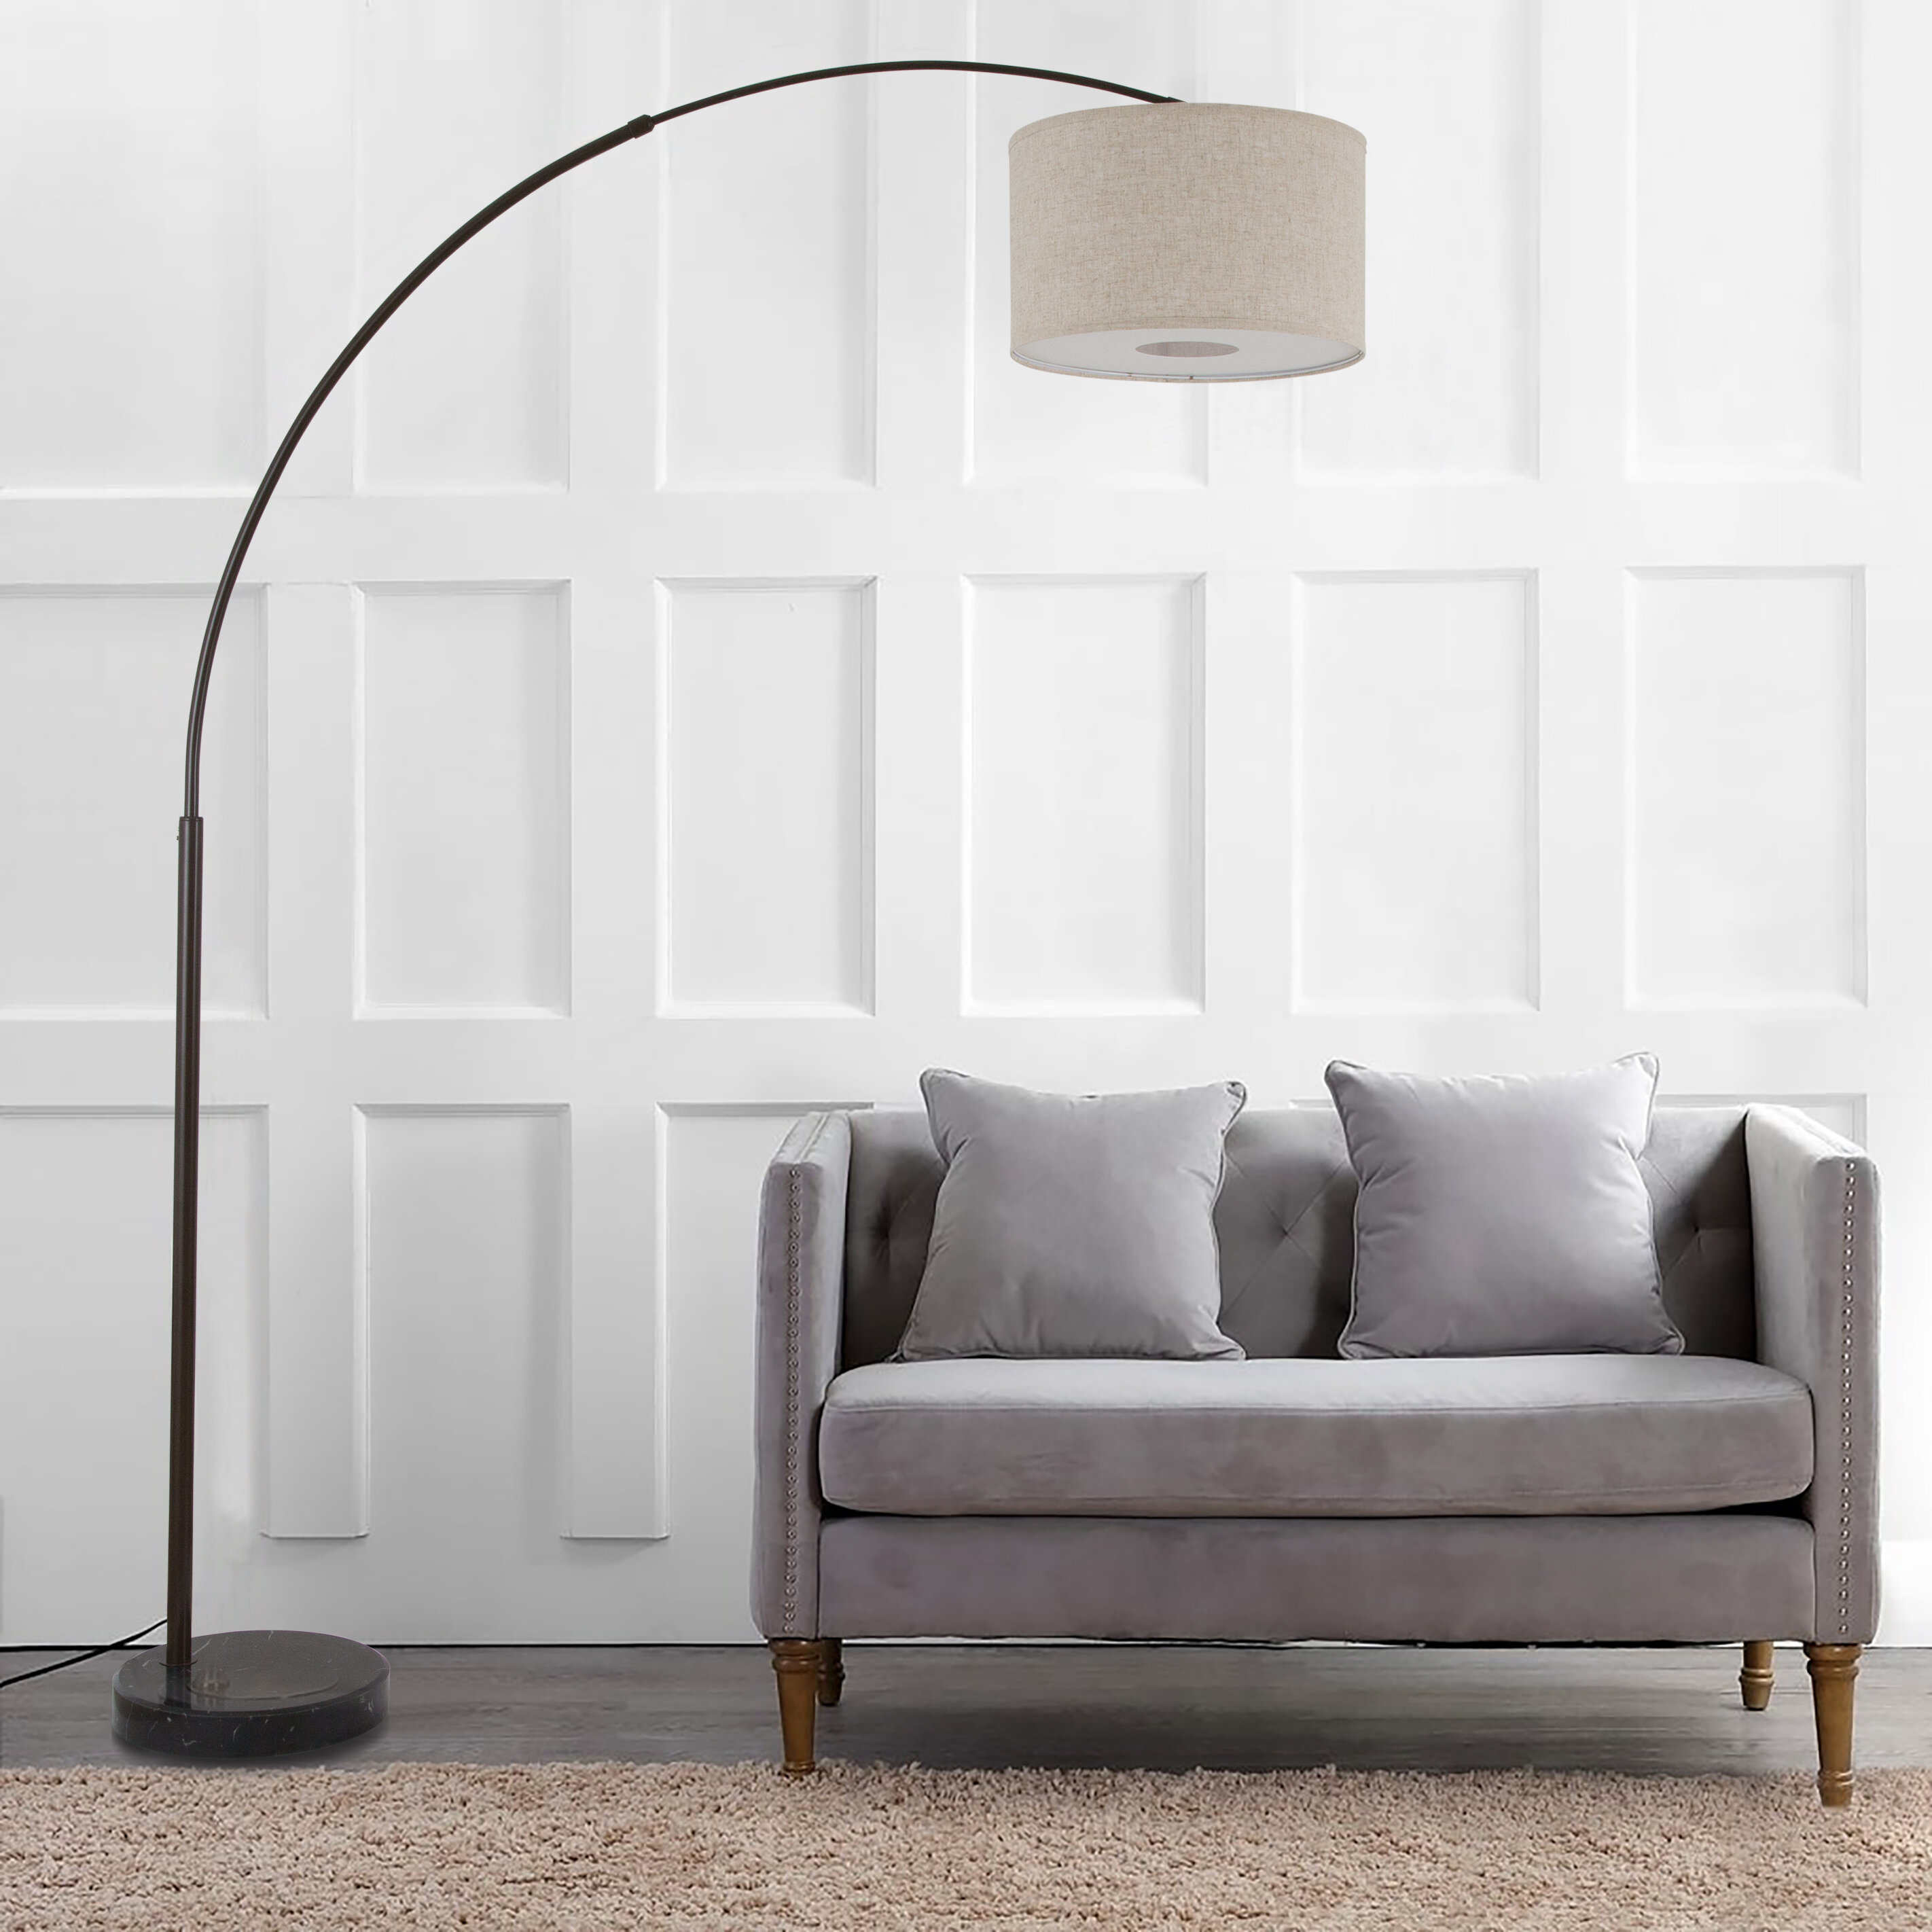 "Changir 9"" Arched Floor Lamp"